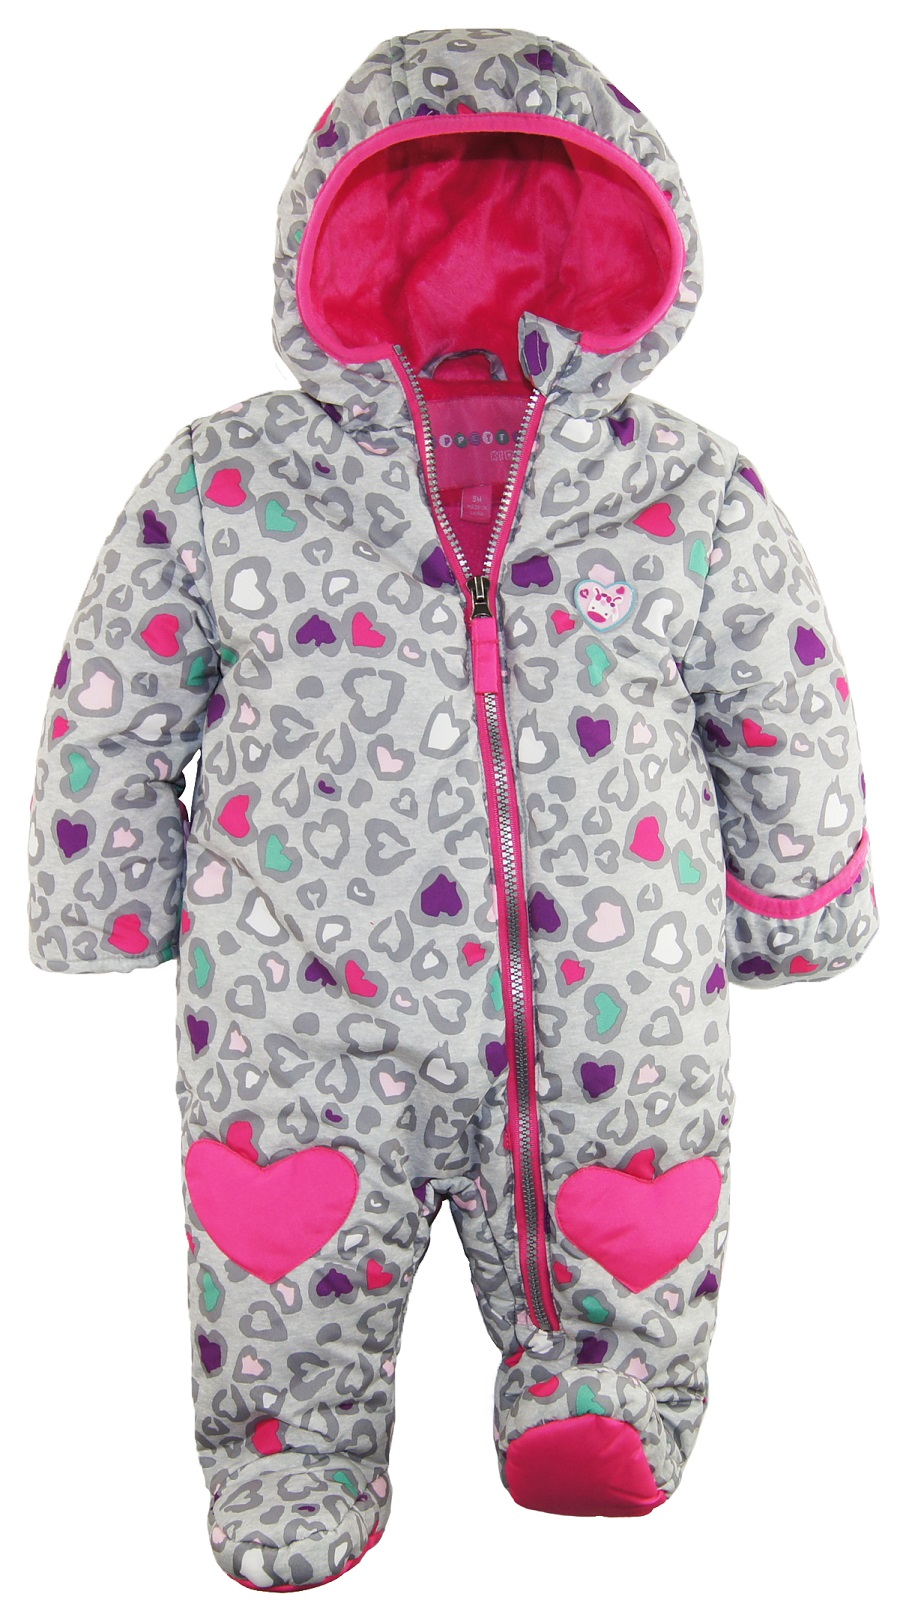 dda37ca11 WIPPETTE KIDS - Wippette Baby Girls' Giraffe Hearts Microfiber Footed One  Piece Snowsuit Pram - Walmart.com